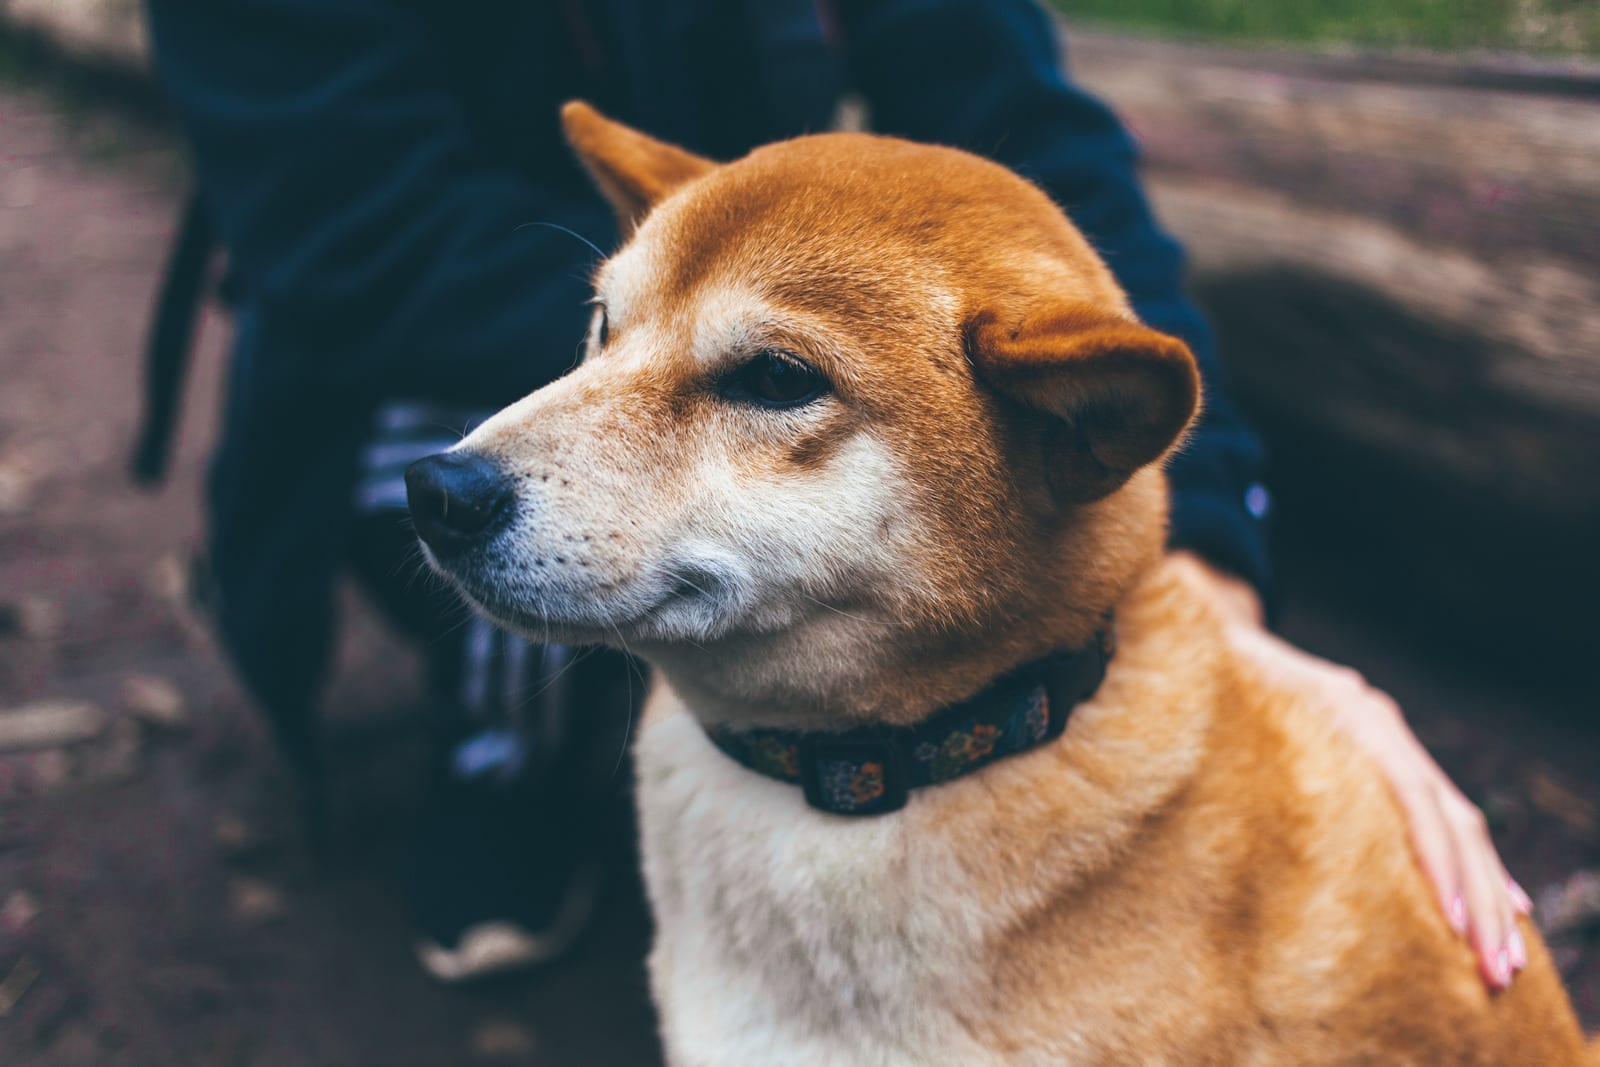 How do flea collars work and how do I decide which one to buy?